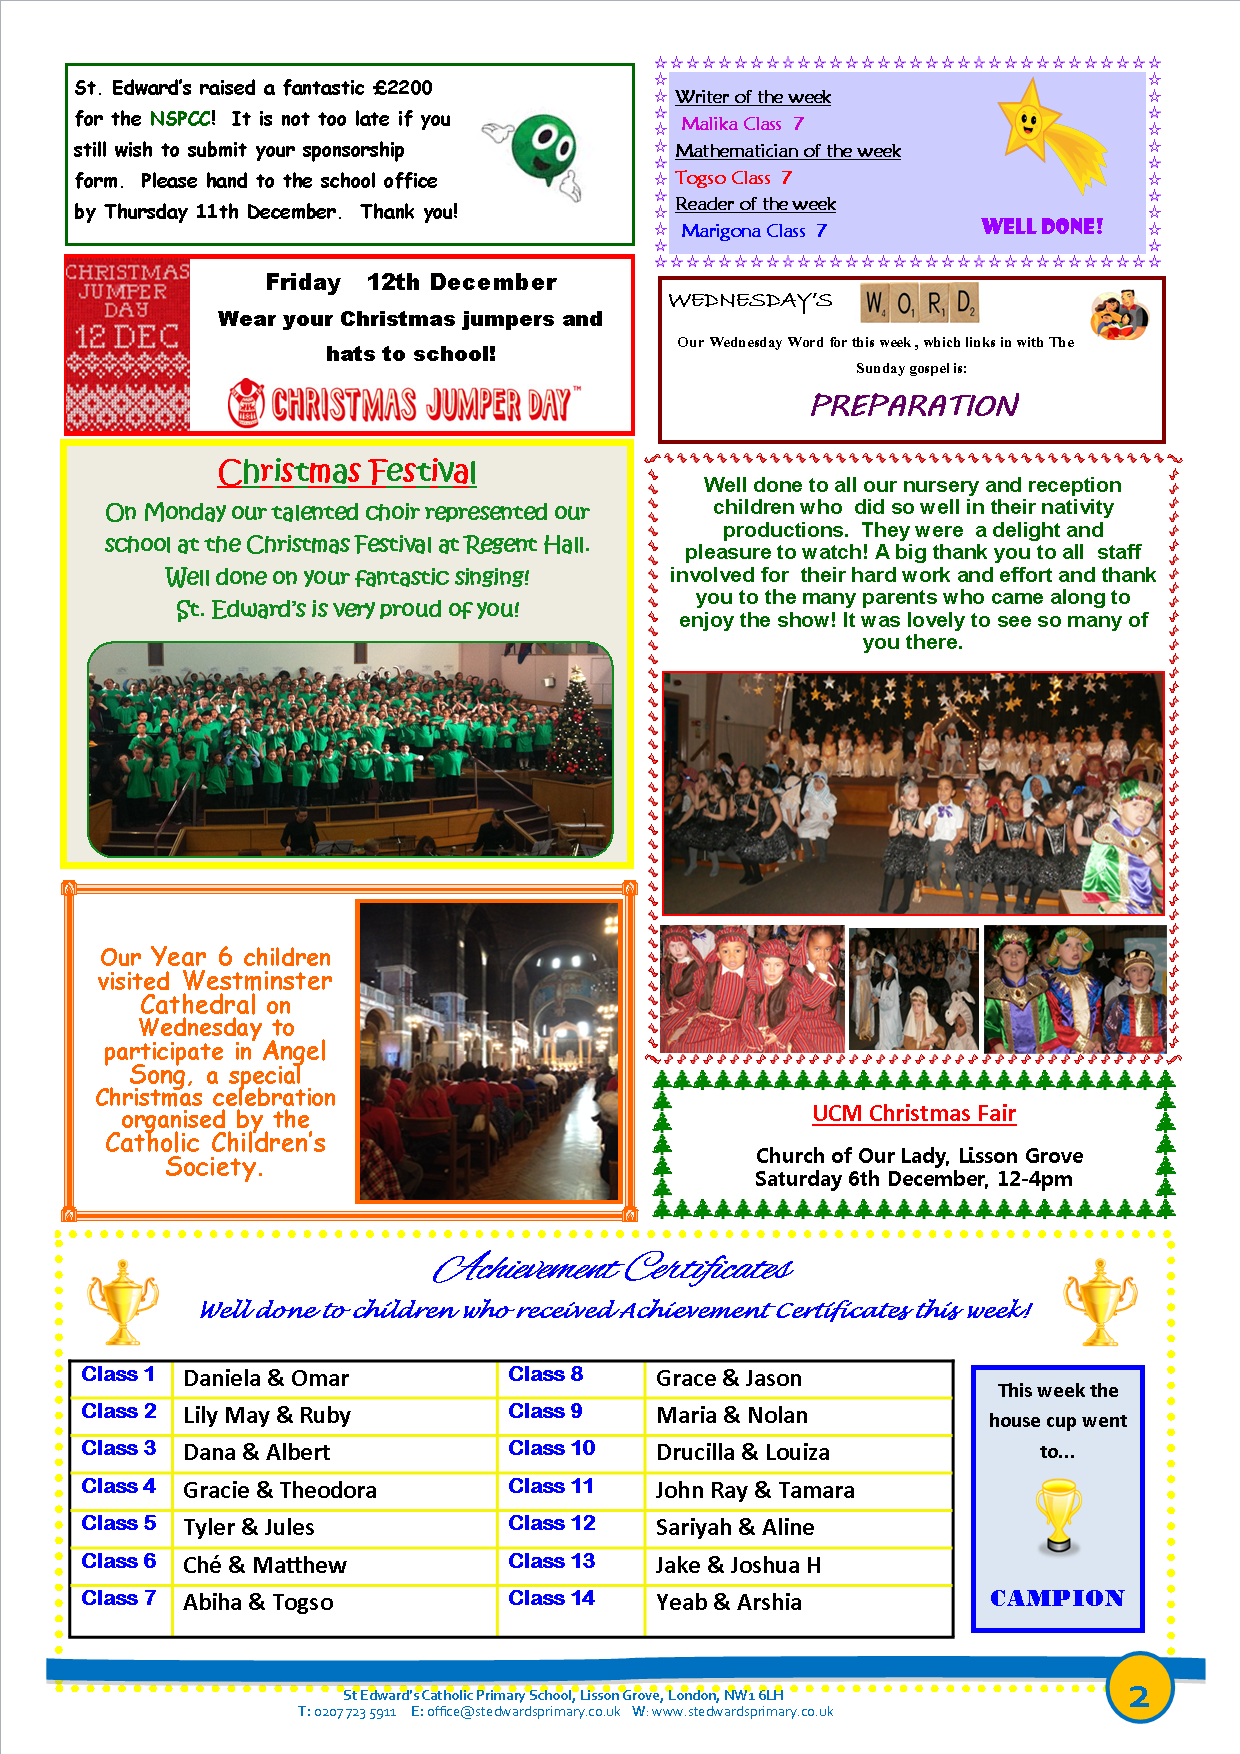 2St Edward's Newsletter Issue 12 5th December 2014.png